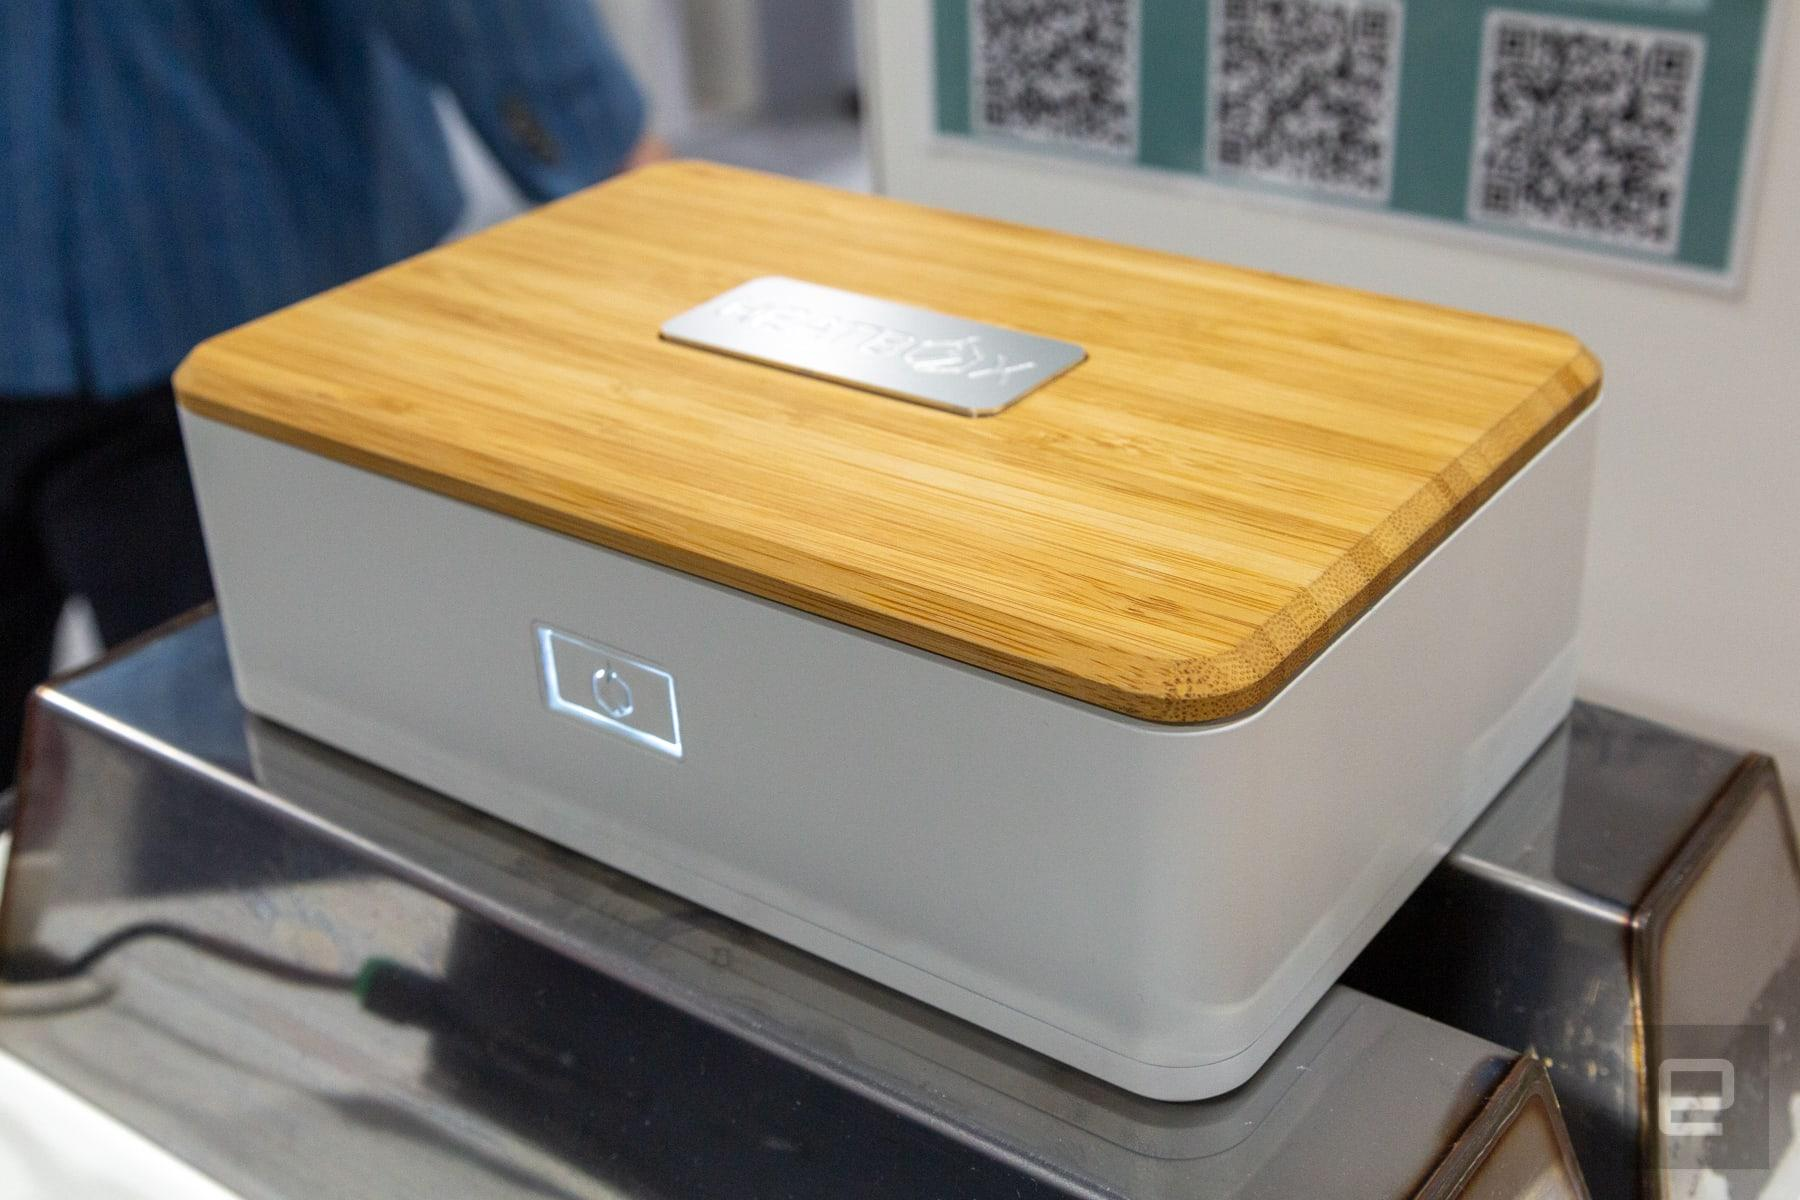 This rechargeable lunchbox uses steam to reheat your food | Engadget